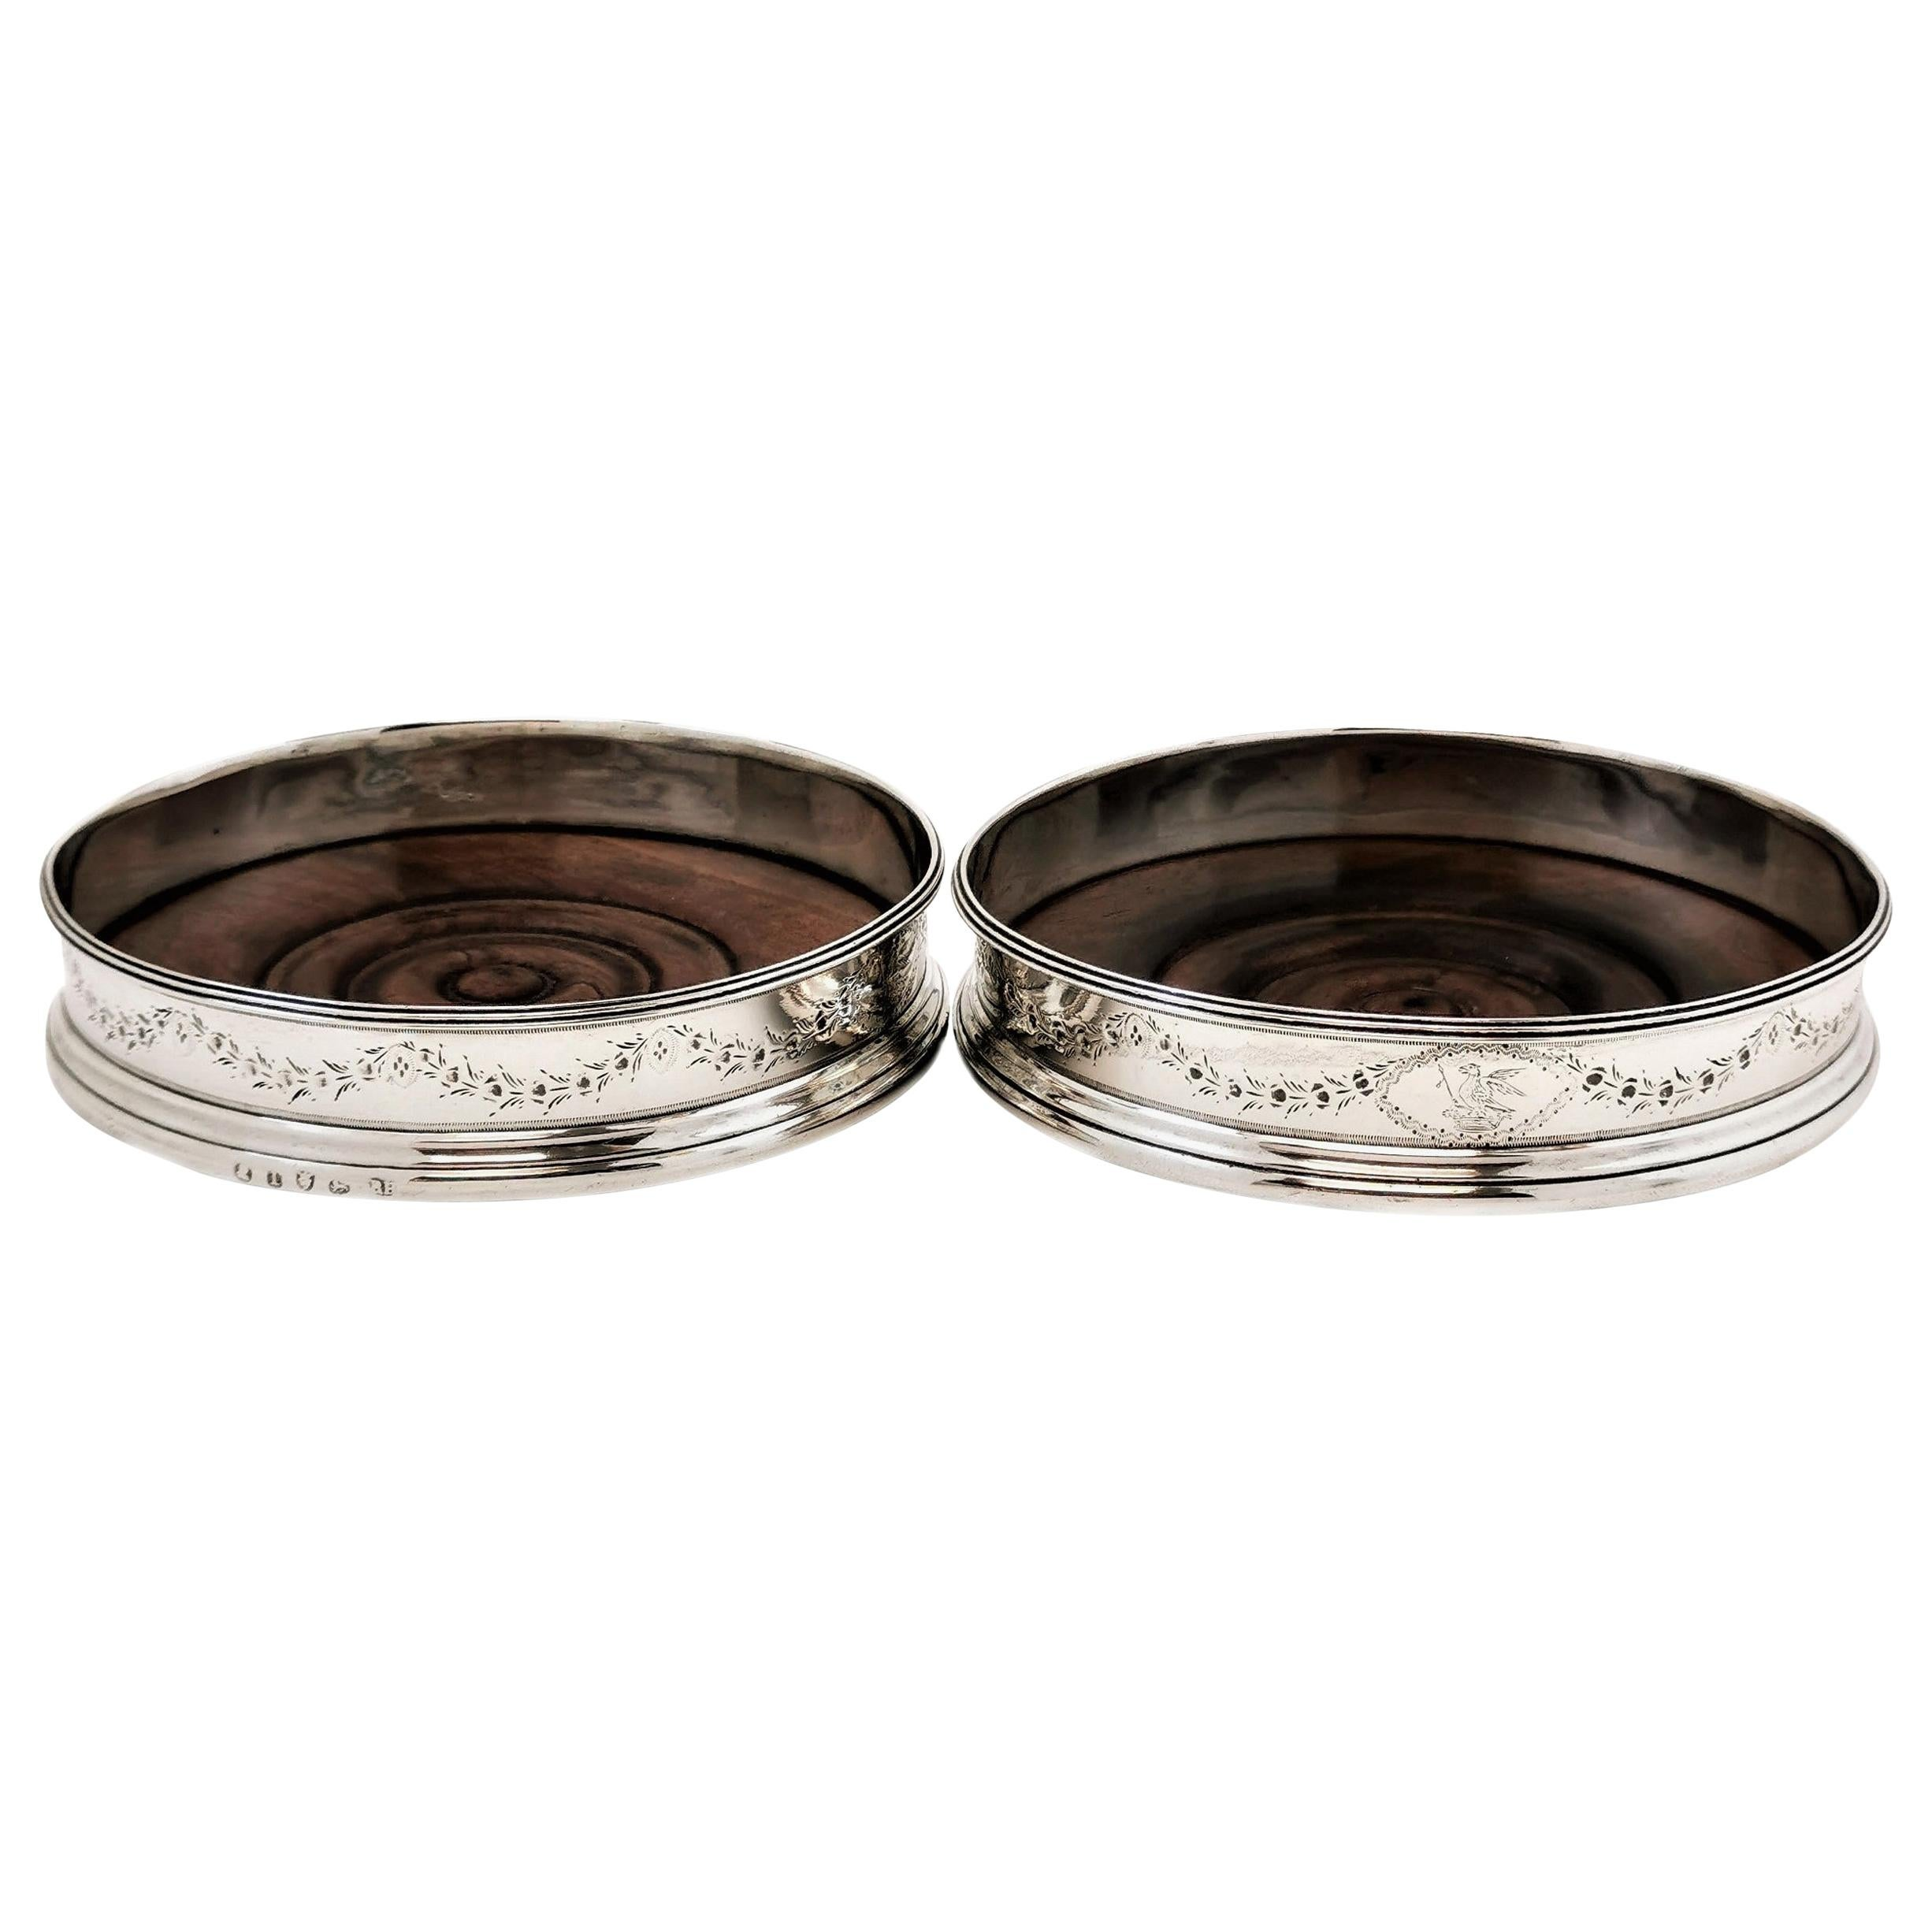 Pair of Antique Georgian Sterling Silver Silver Wine Bottle Coasters, 1786